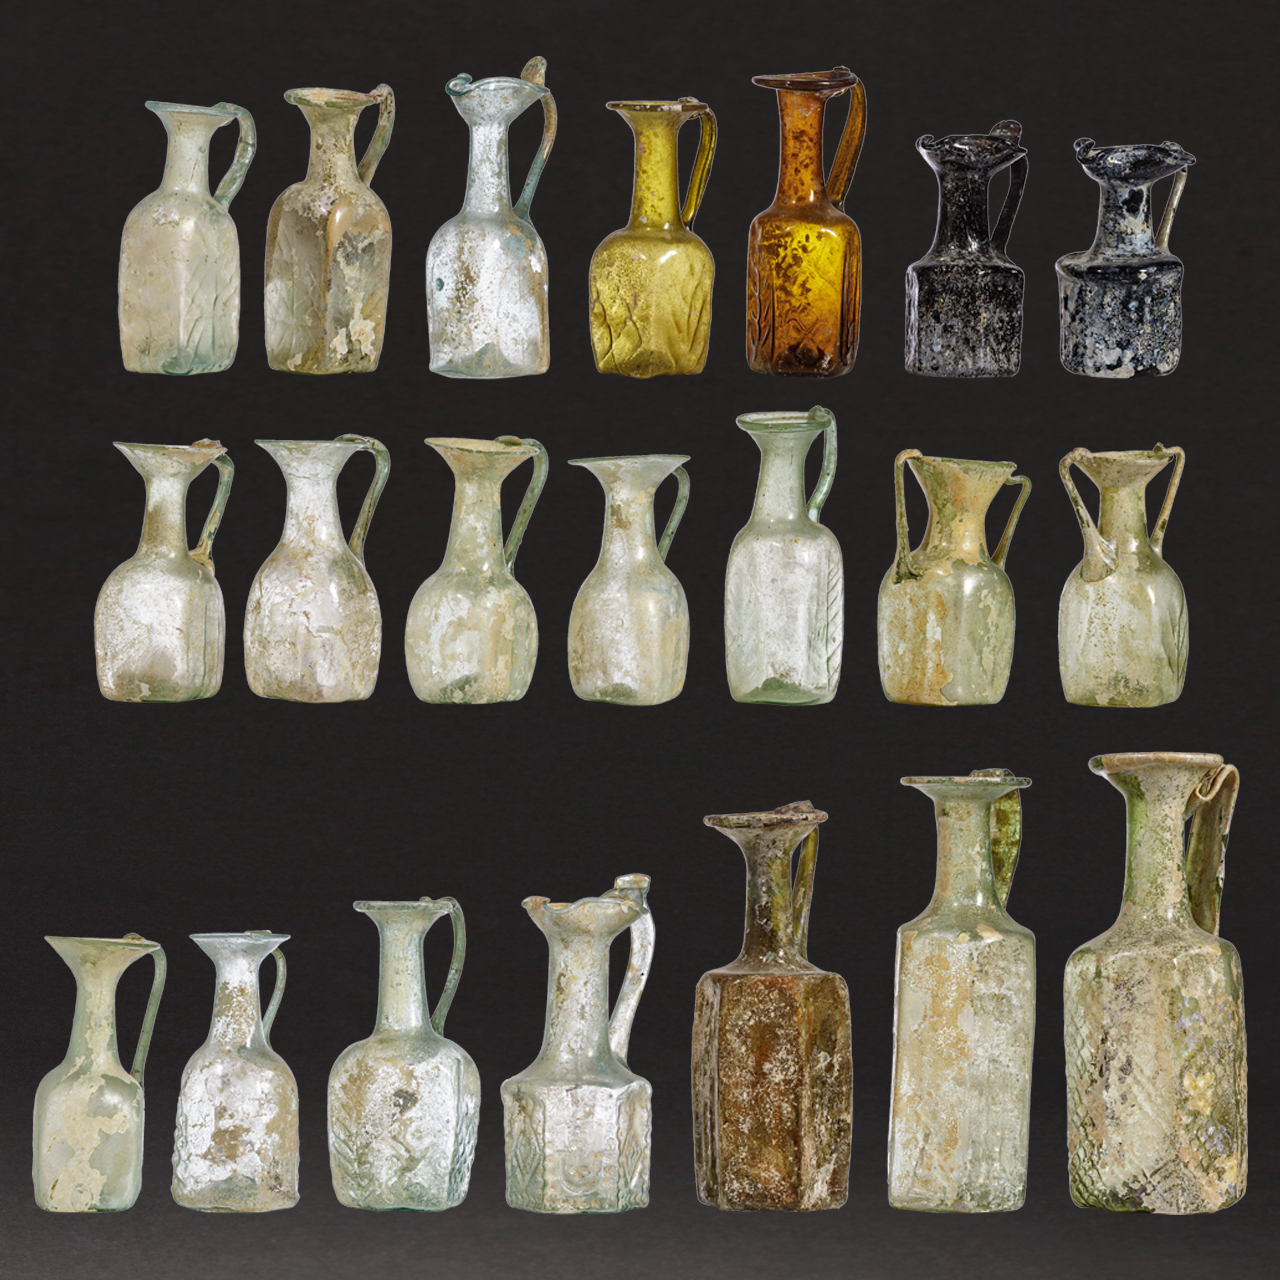 21 Late Roman and Early Byzantine Glass Vessels